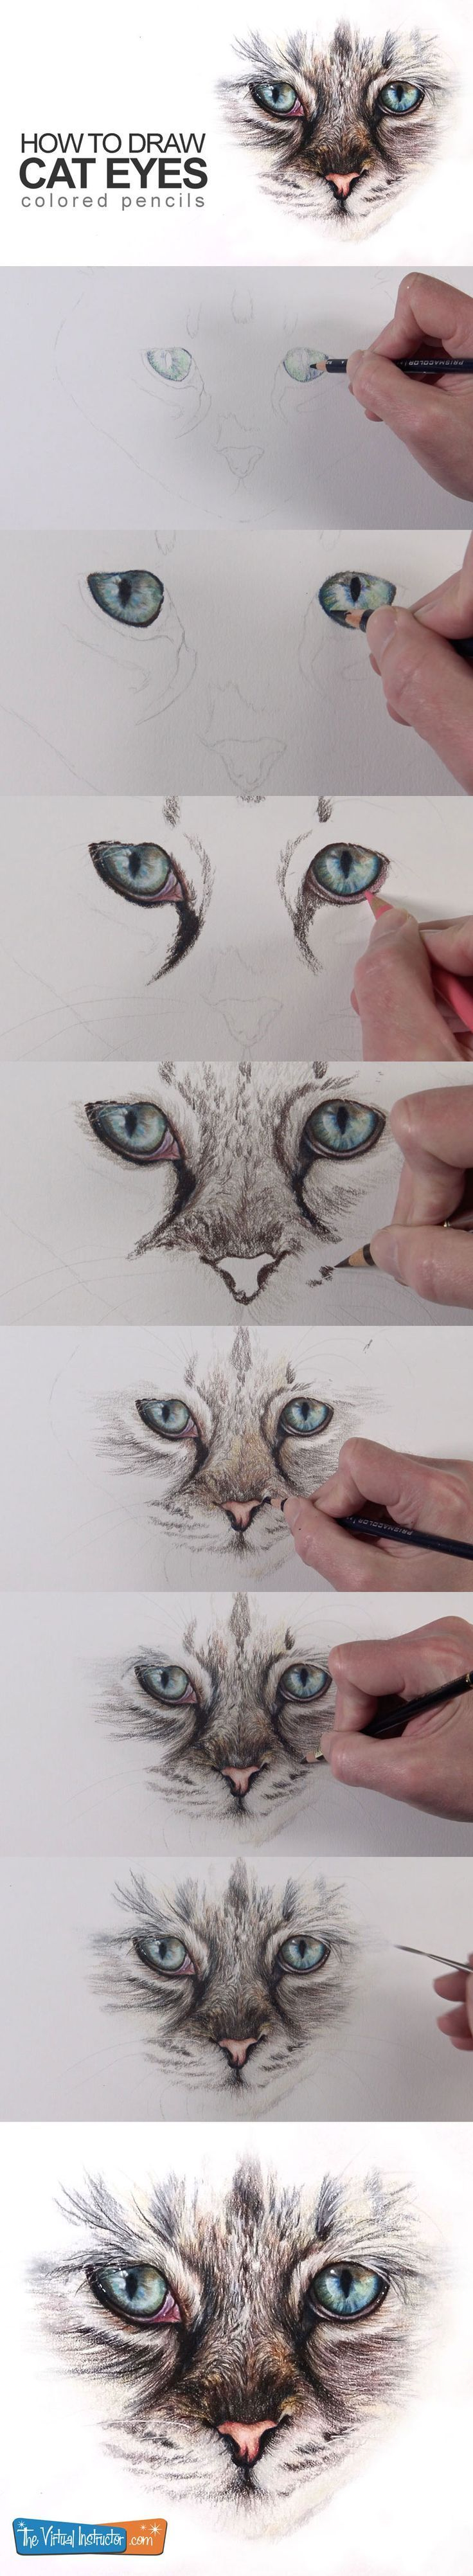 Learn How To Draw Cat Eyes With Colored Pencils In This Lesson